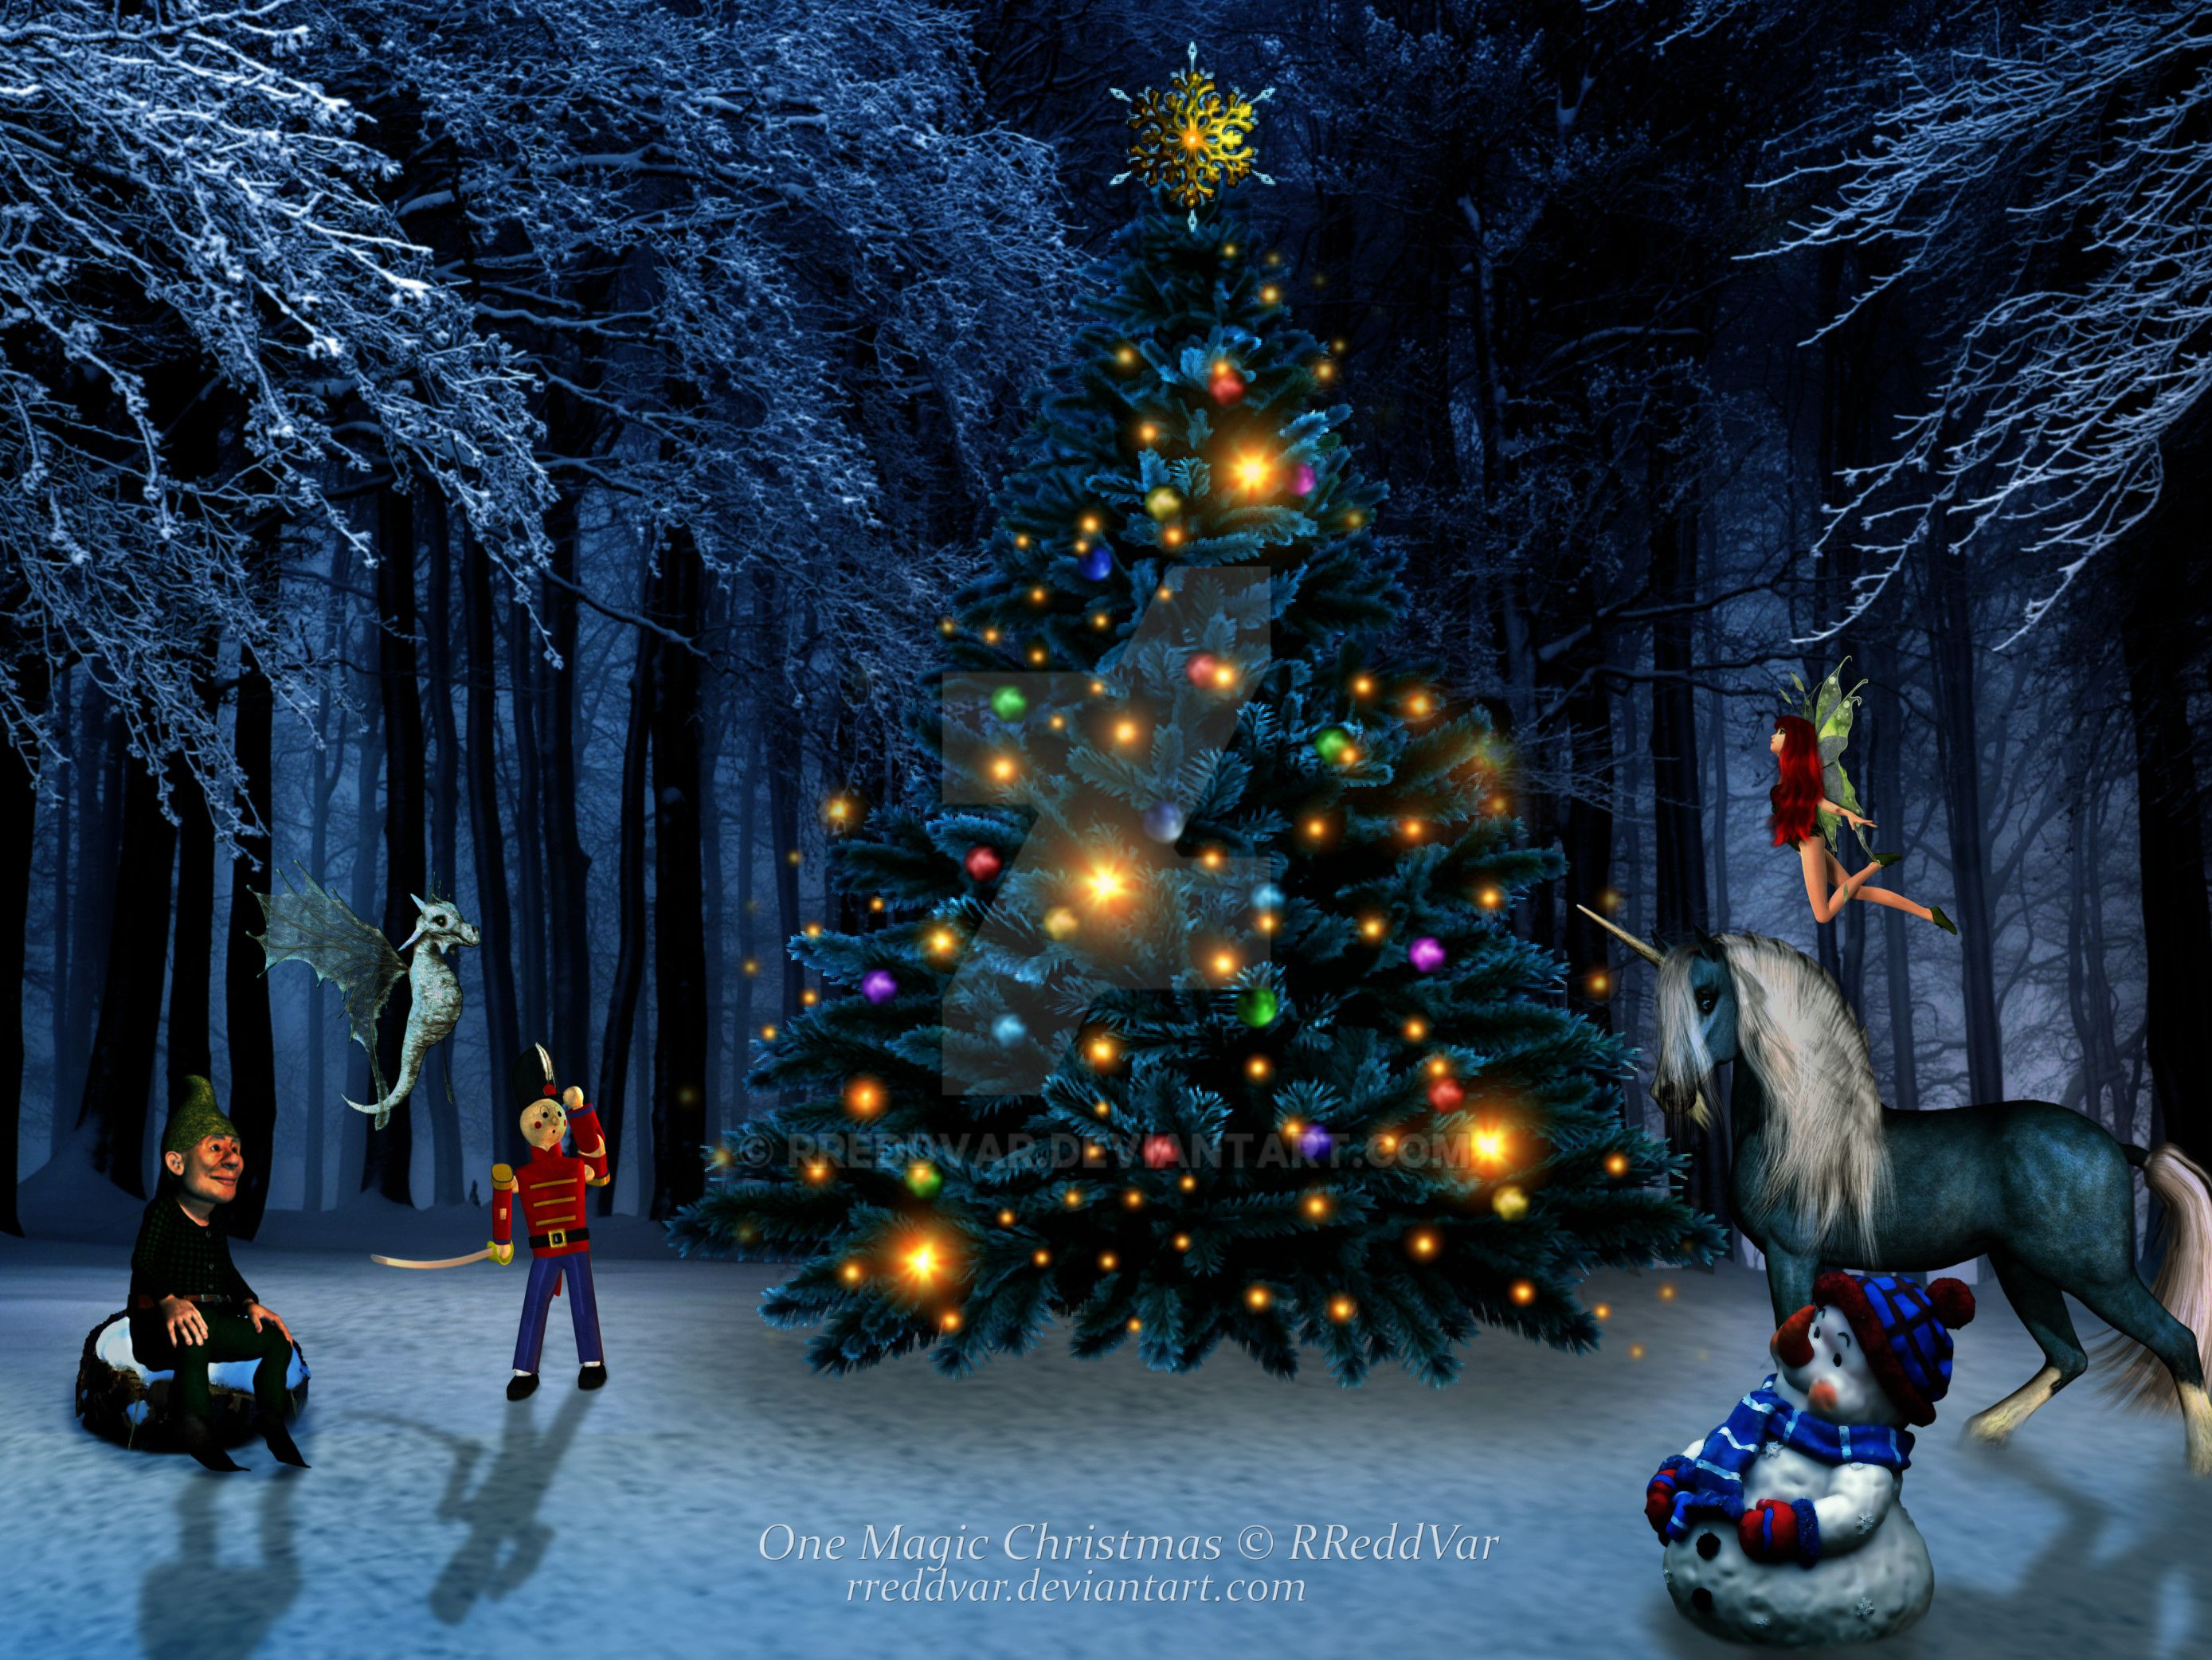 One Magic Christmas By RReddVar On DeviantArt - Magic Christmas Tree